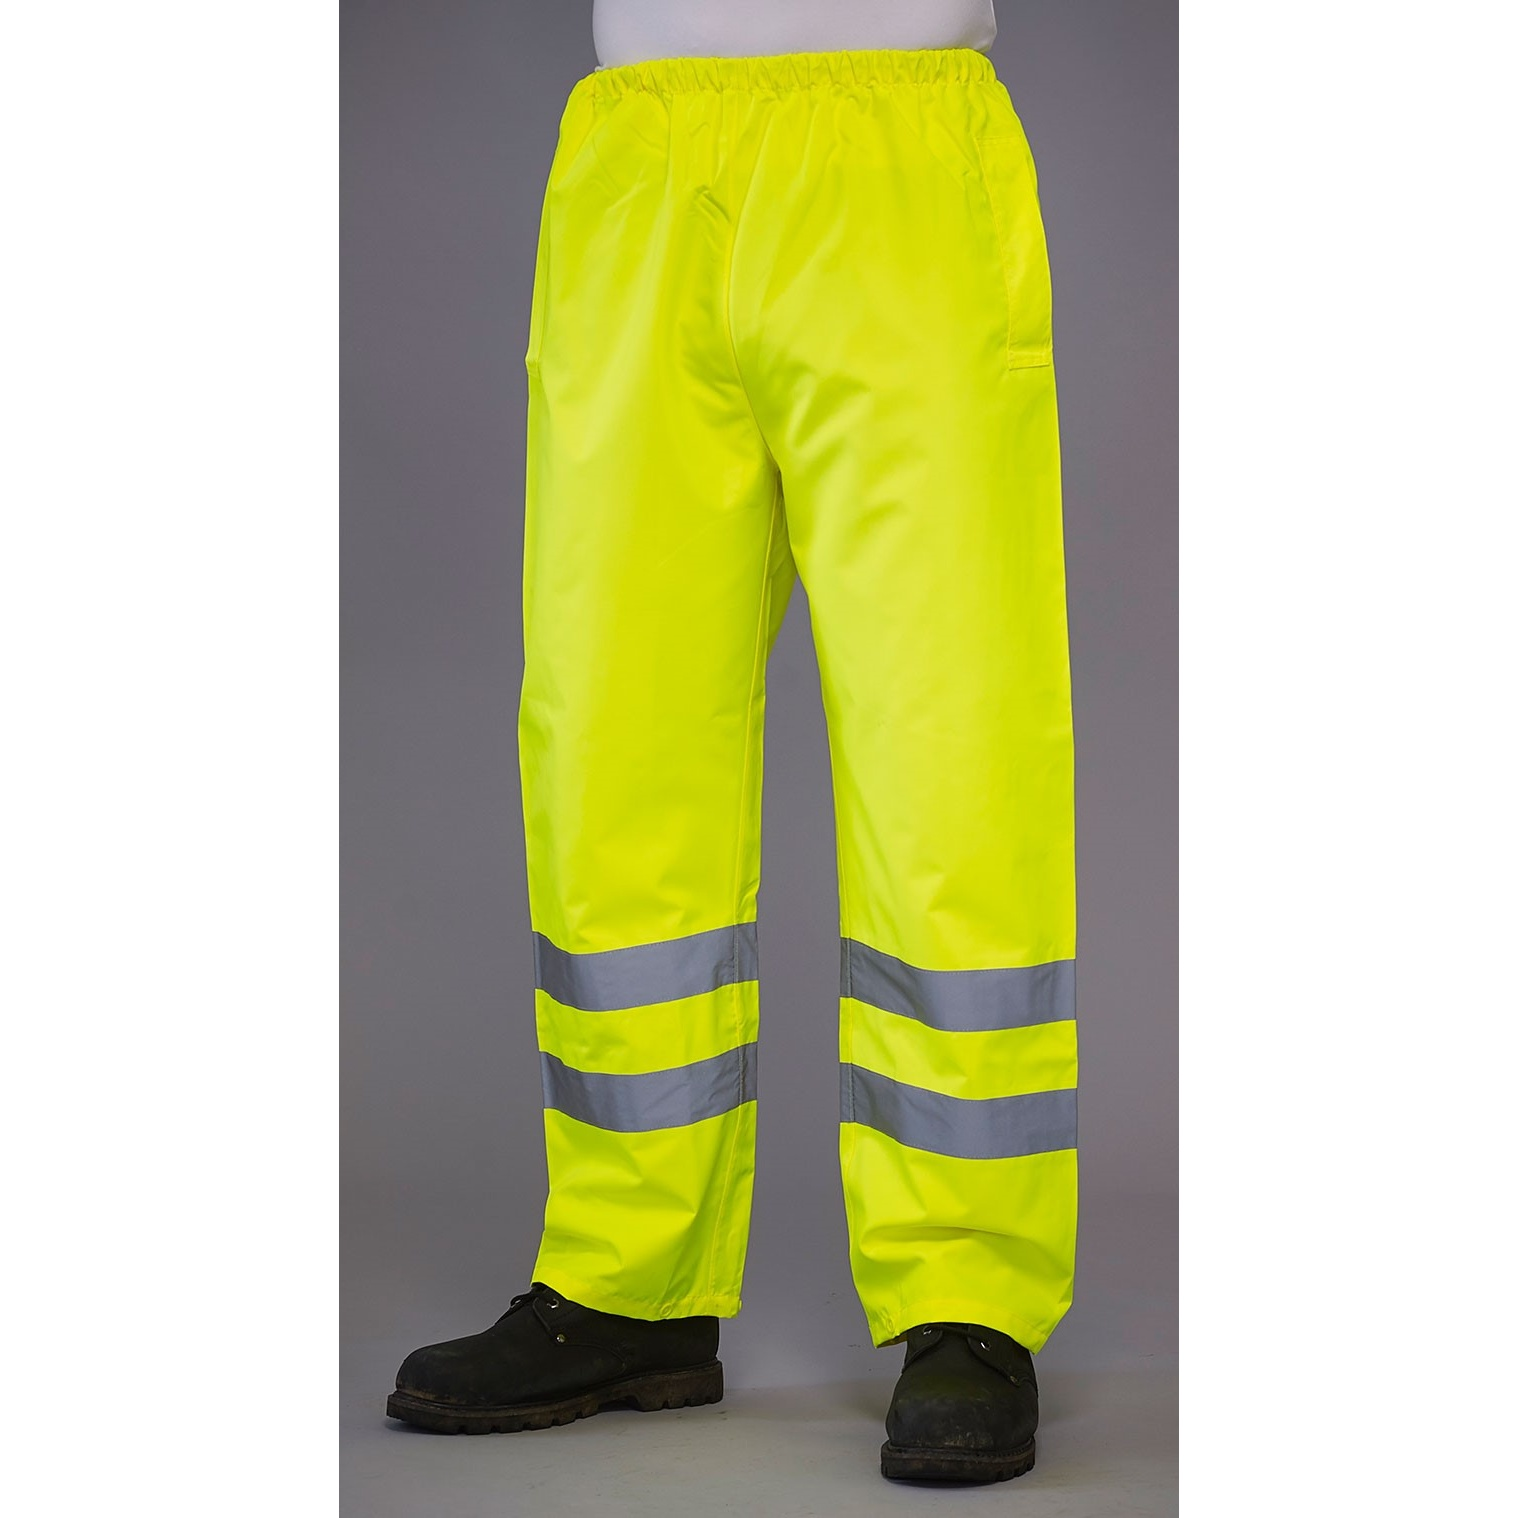 Grafters Unisex Safety Hi-Visibility Waterproof Over Trousers (S) (Yellow)